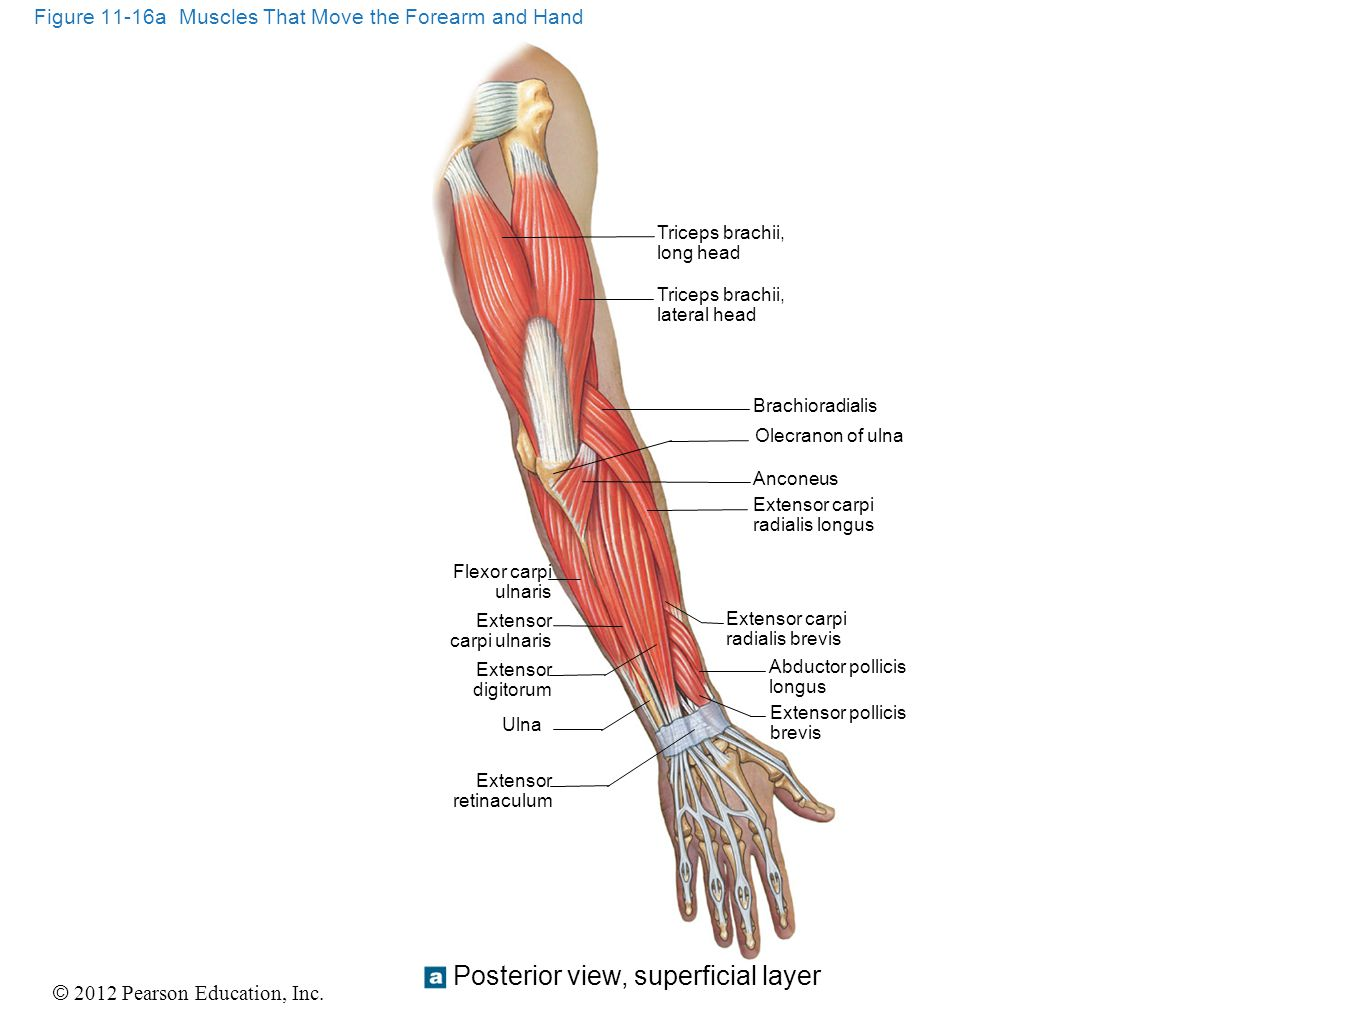 Figure 11-16a Muscles That Move the Forearm and Hand